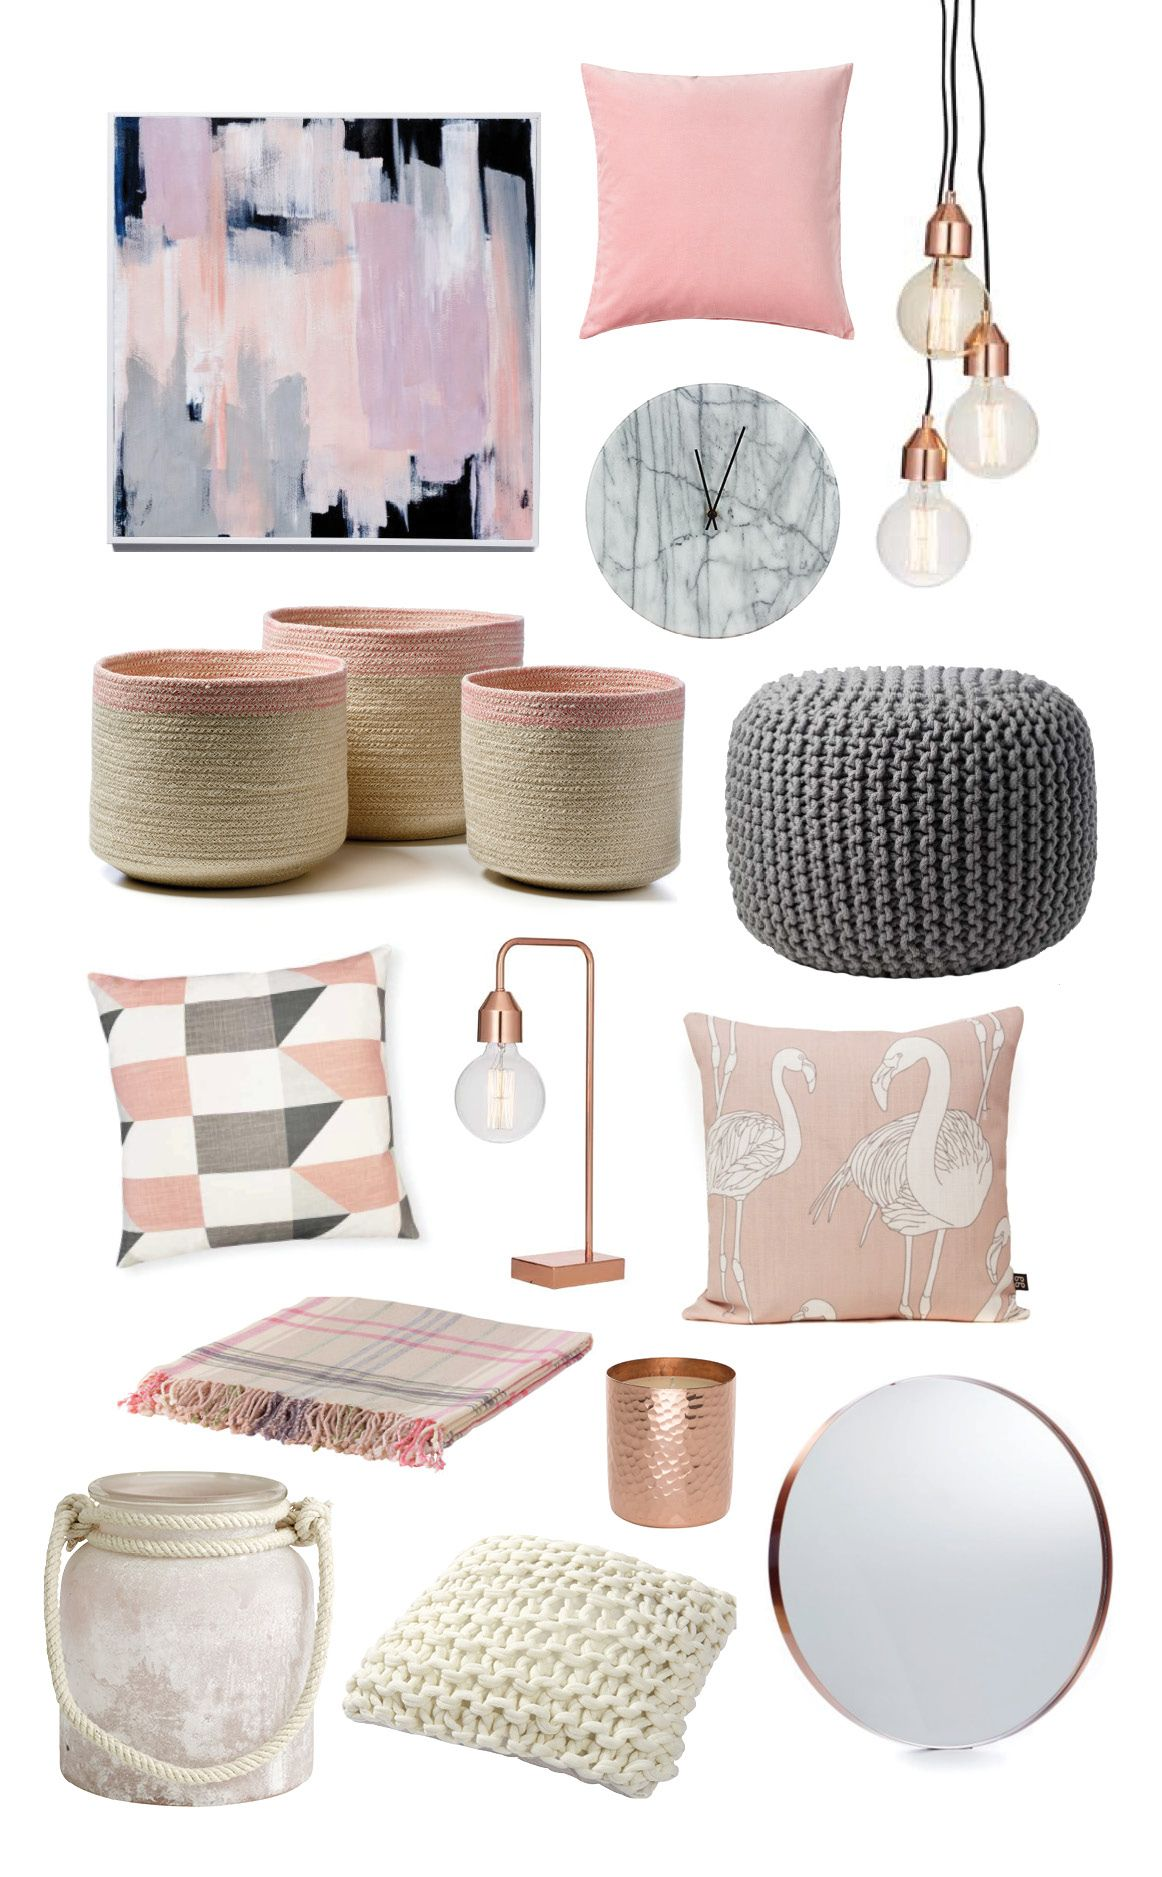 Trending items blush pink click through for stockists for Home interior accessories